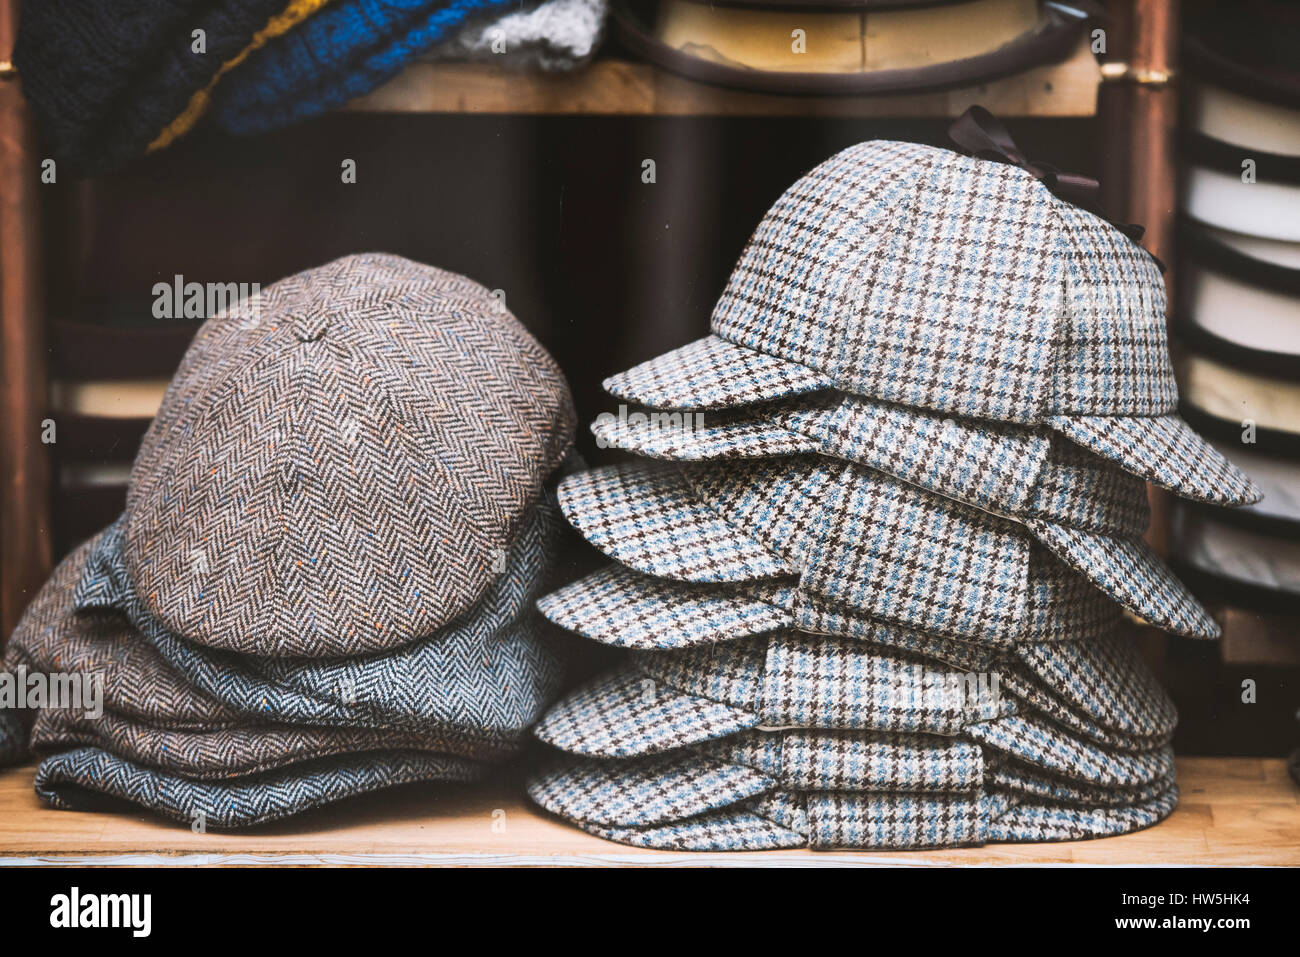 Old Hat Shop London High Resolution Stock Photography And Images Alamy